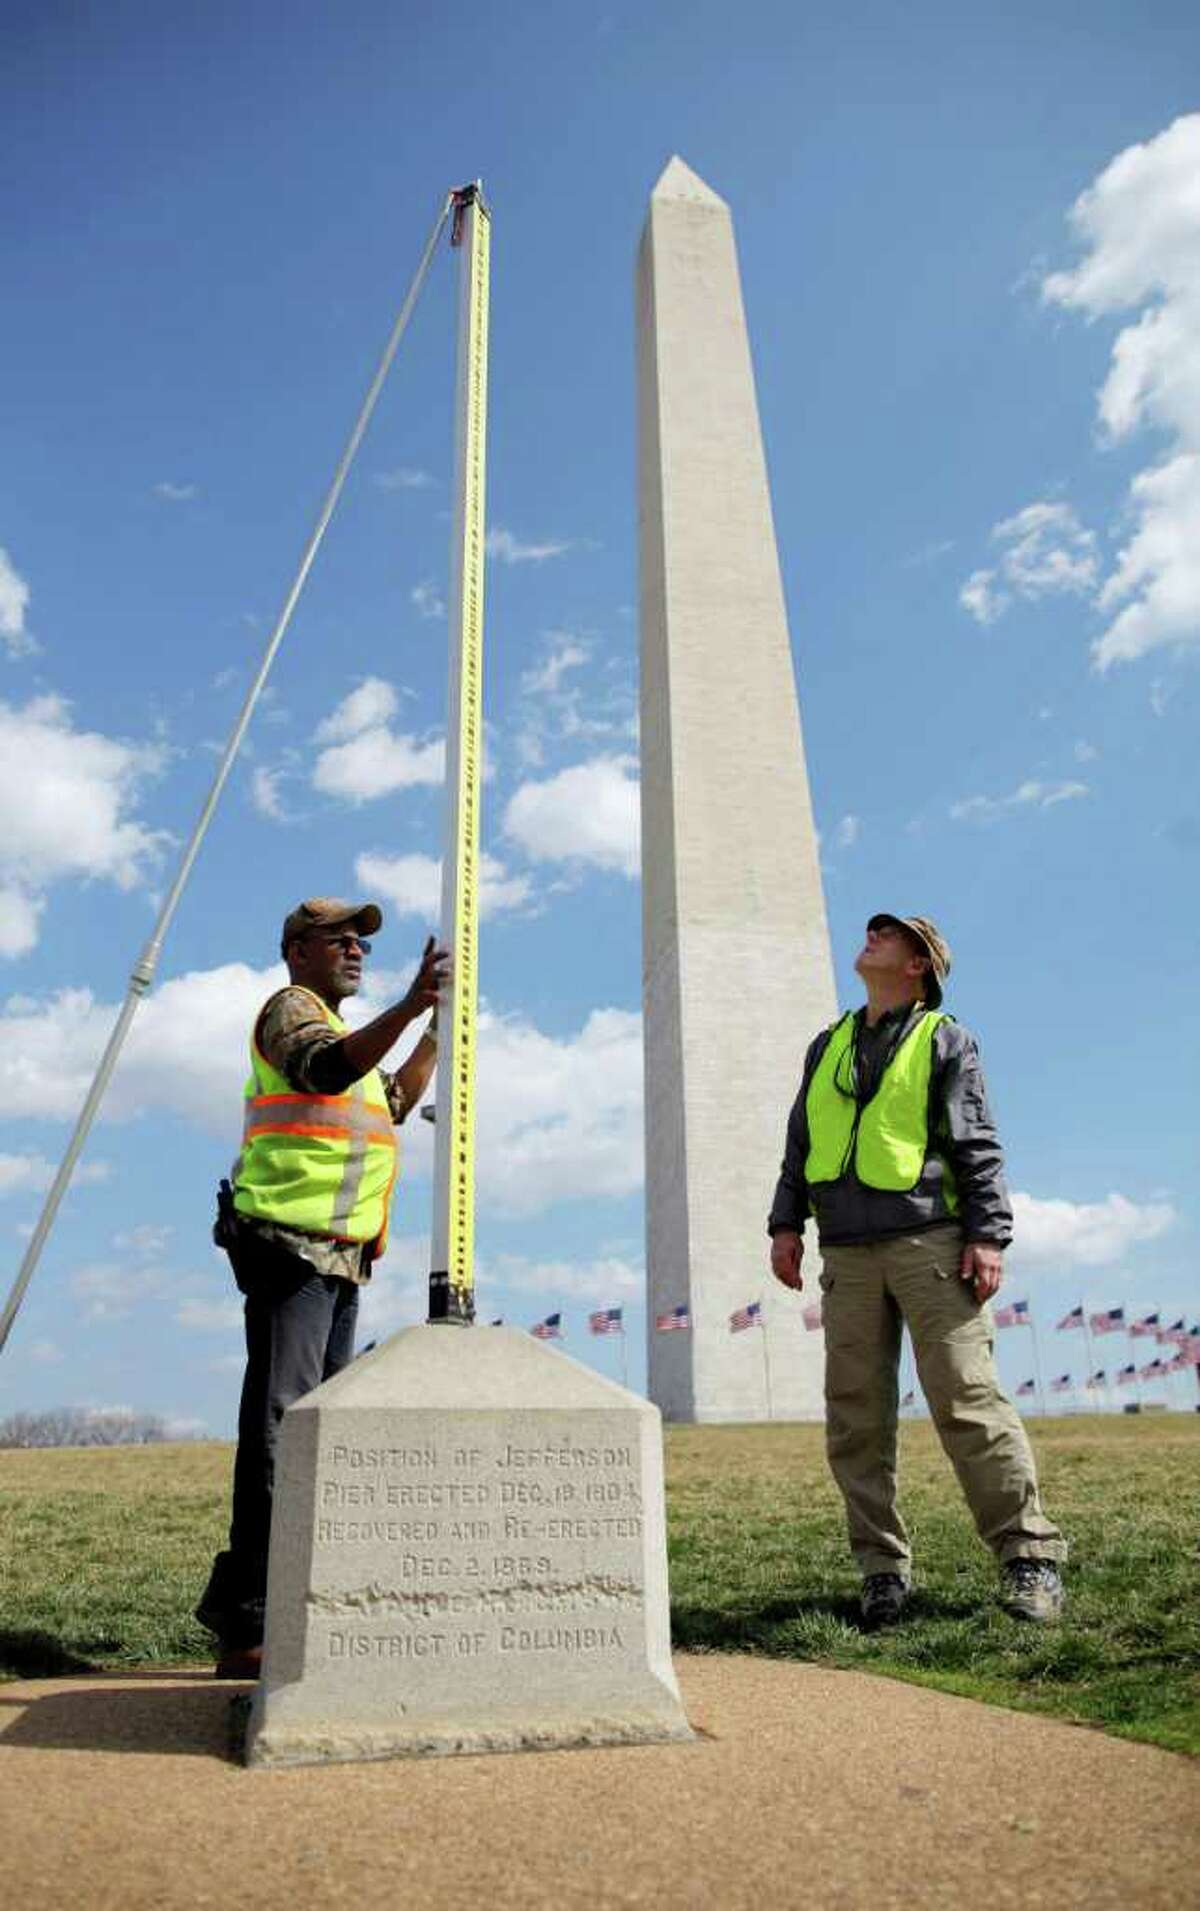 Eric Duvall, cartographic technician, left, and Jeff Olsen, geodesist, both with the National Oceanic and Atmospheric Administration (NOAA) National Geodetic Survey, measures elevation on the National Mall, with the Washington Monument in the background, Tuesday, March 13, 2012, in Washington. Government surveyors are collecting data around the Washington Monument and other sites on the National Mall that will reveal whether it has sunk or tilted since last year's earthquake. (AP Photo/Charles Dharapak)